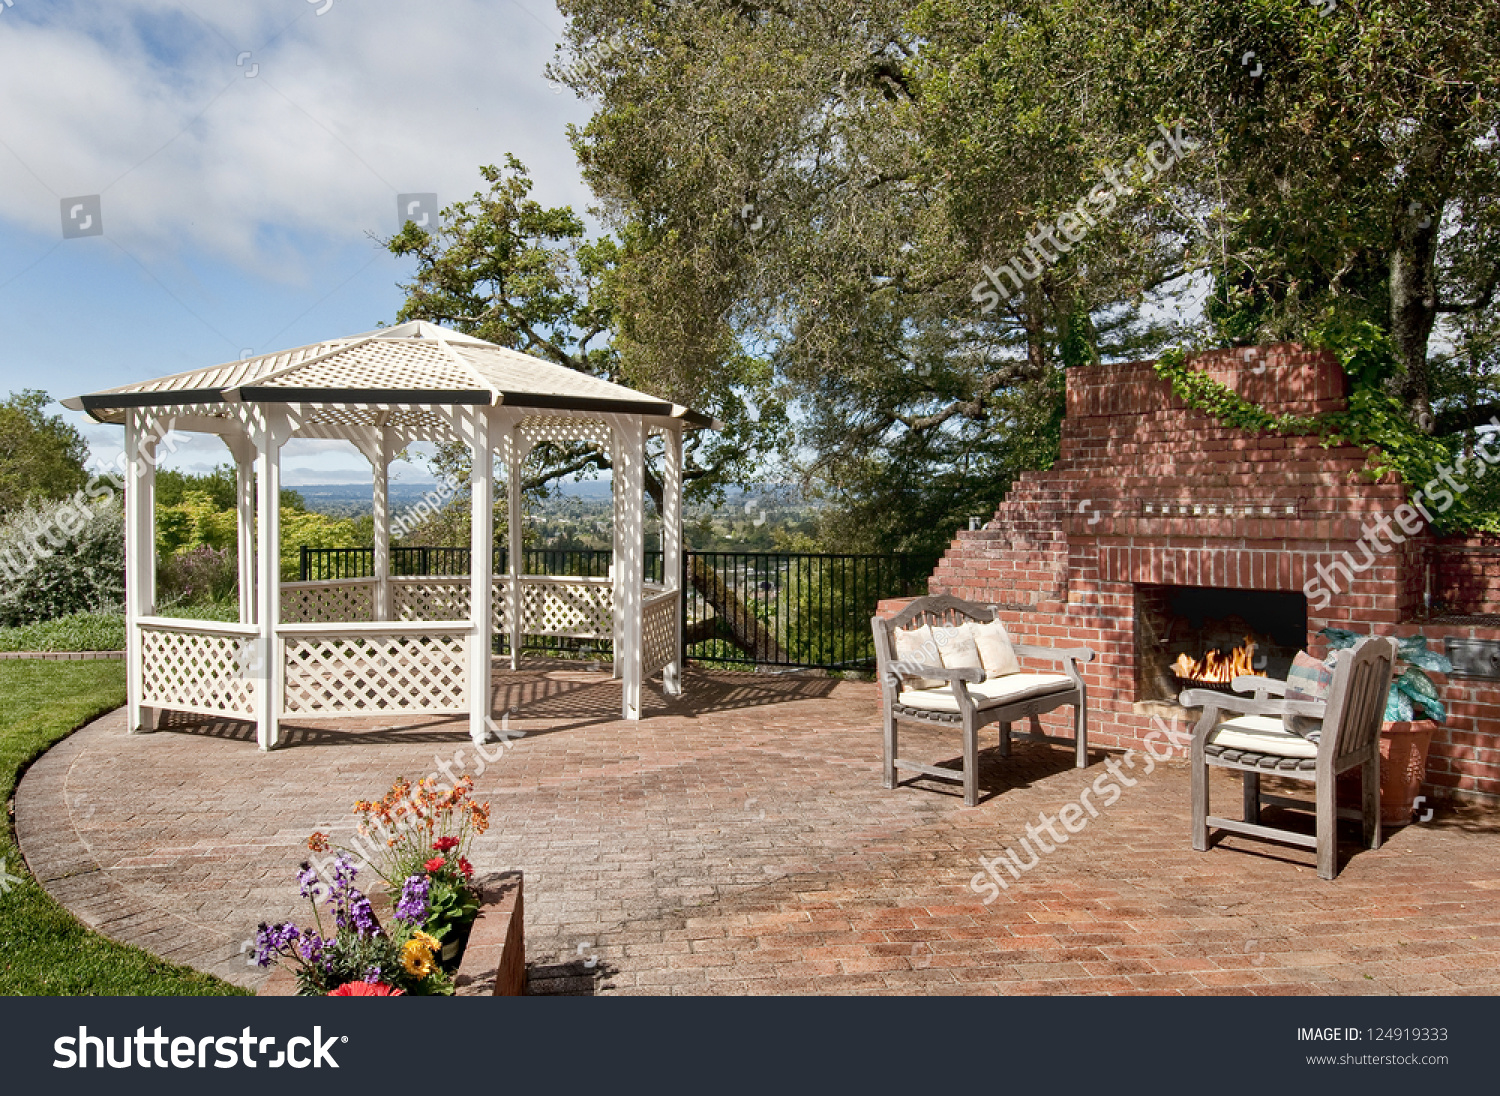 Nice Backyard Patio With Gazebo And Big Brick Fireplace